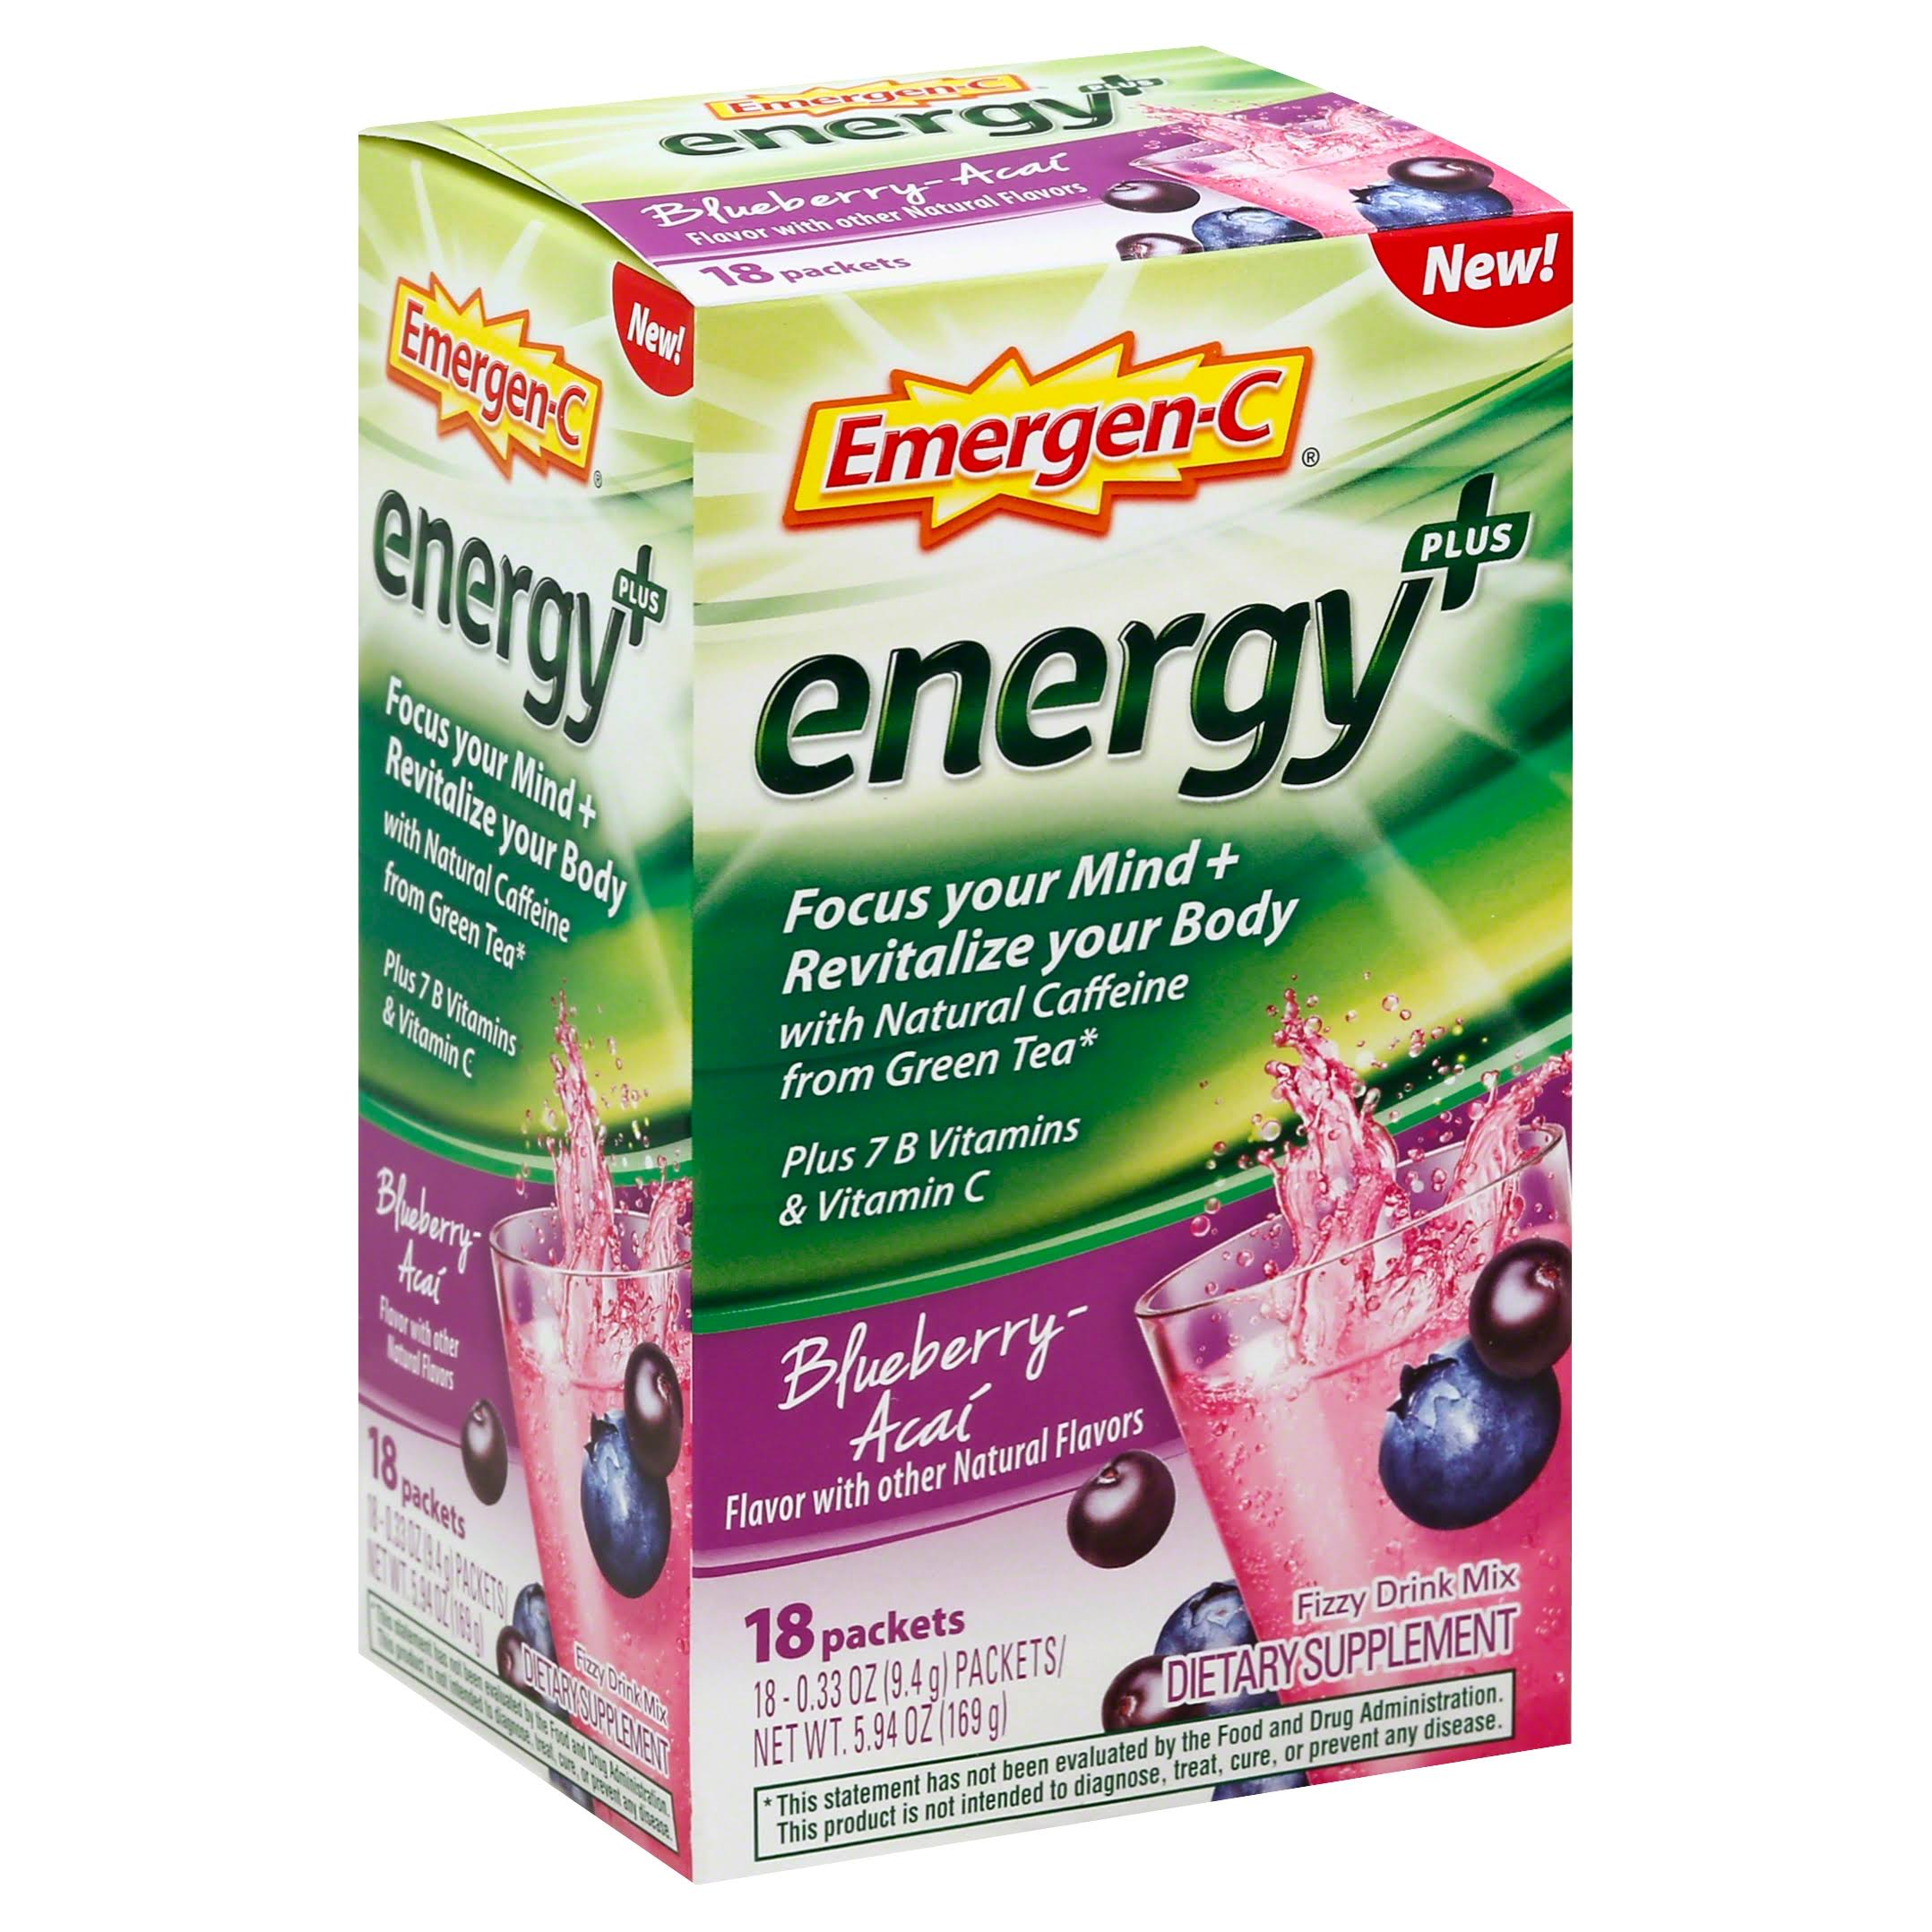 Emergen-C Energy Plus Dietary Supplement Drink Mix - Blueberry-Acai Flavor, 0.33oz, 18 Count